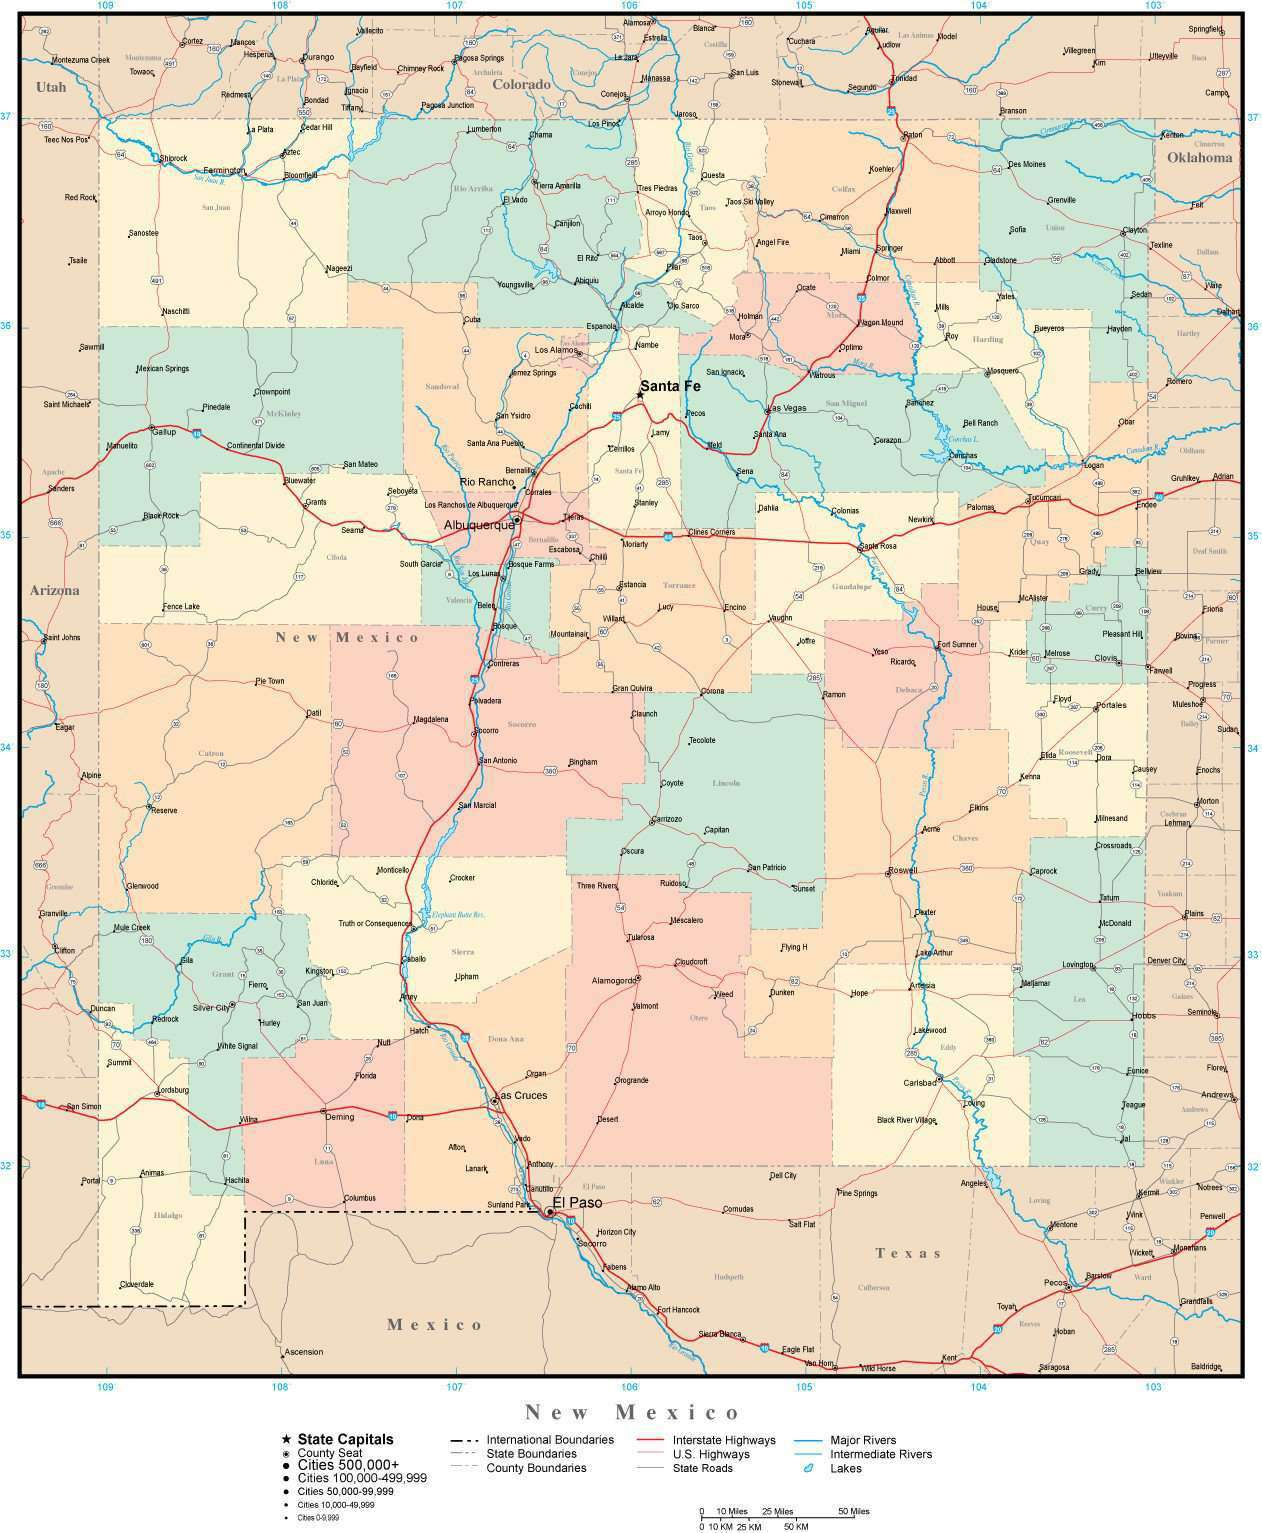 New Mexico Adobe Illustrator Map with Counties, Cities, County Seats ...